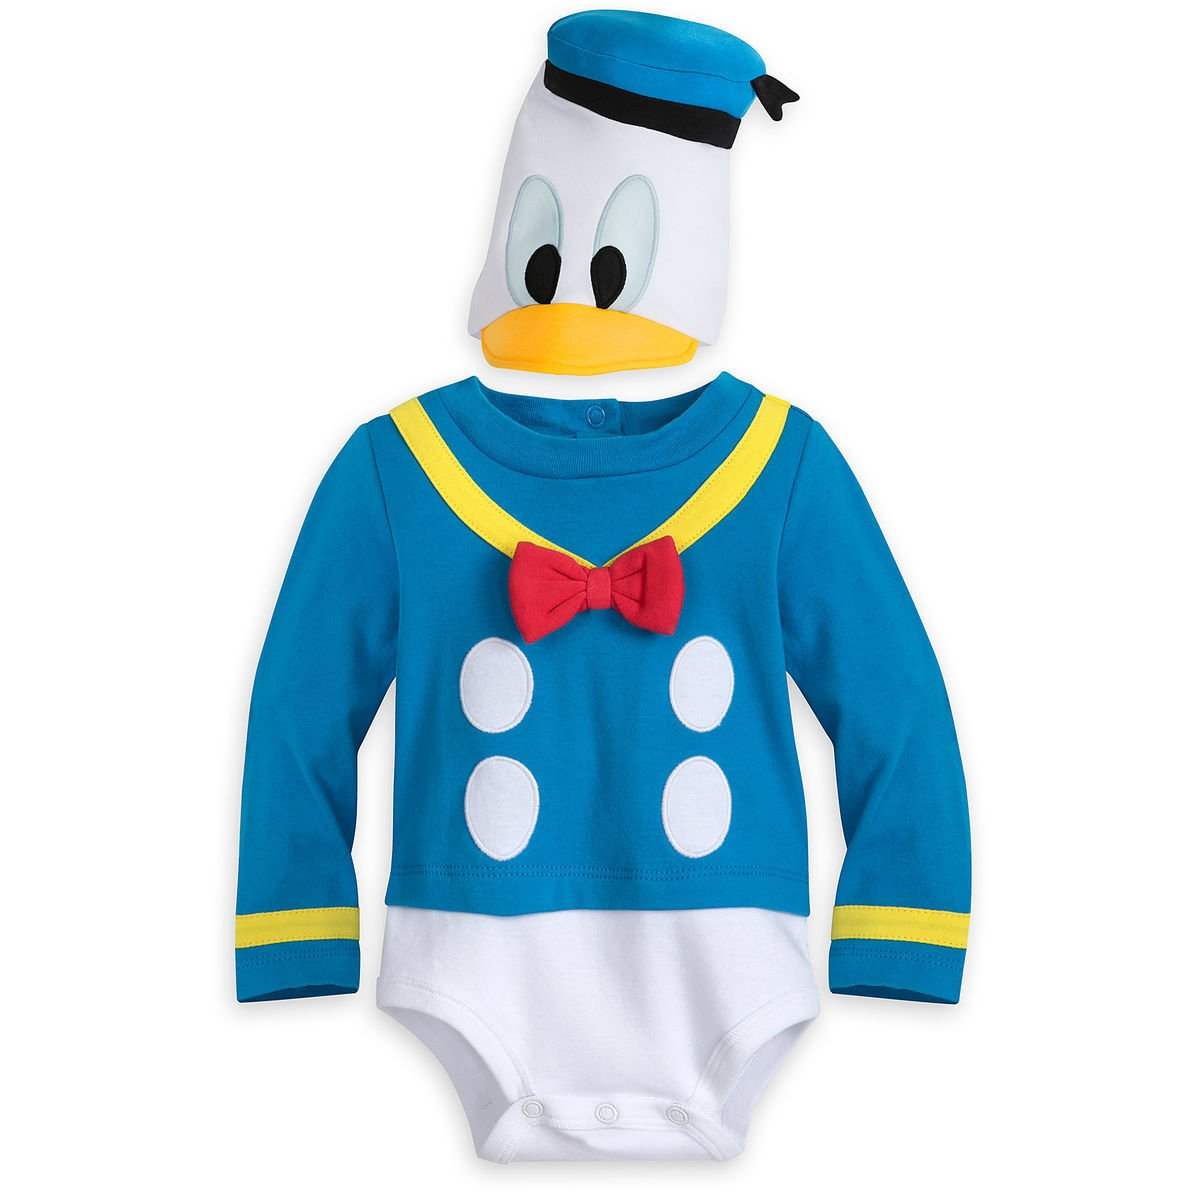 Disney Store Donald Duck Baby Costume Bodysuit Hat 6-9 Months 2018 New